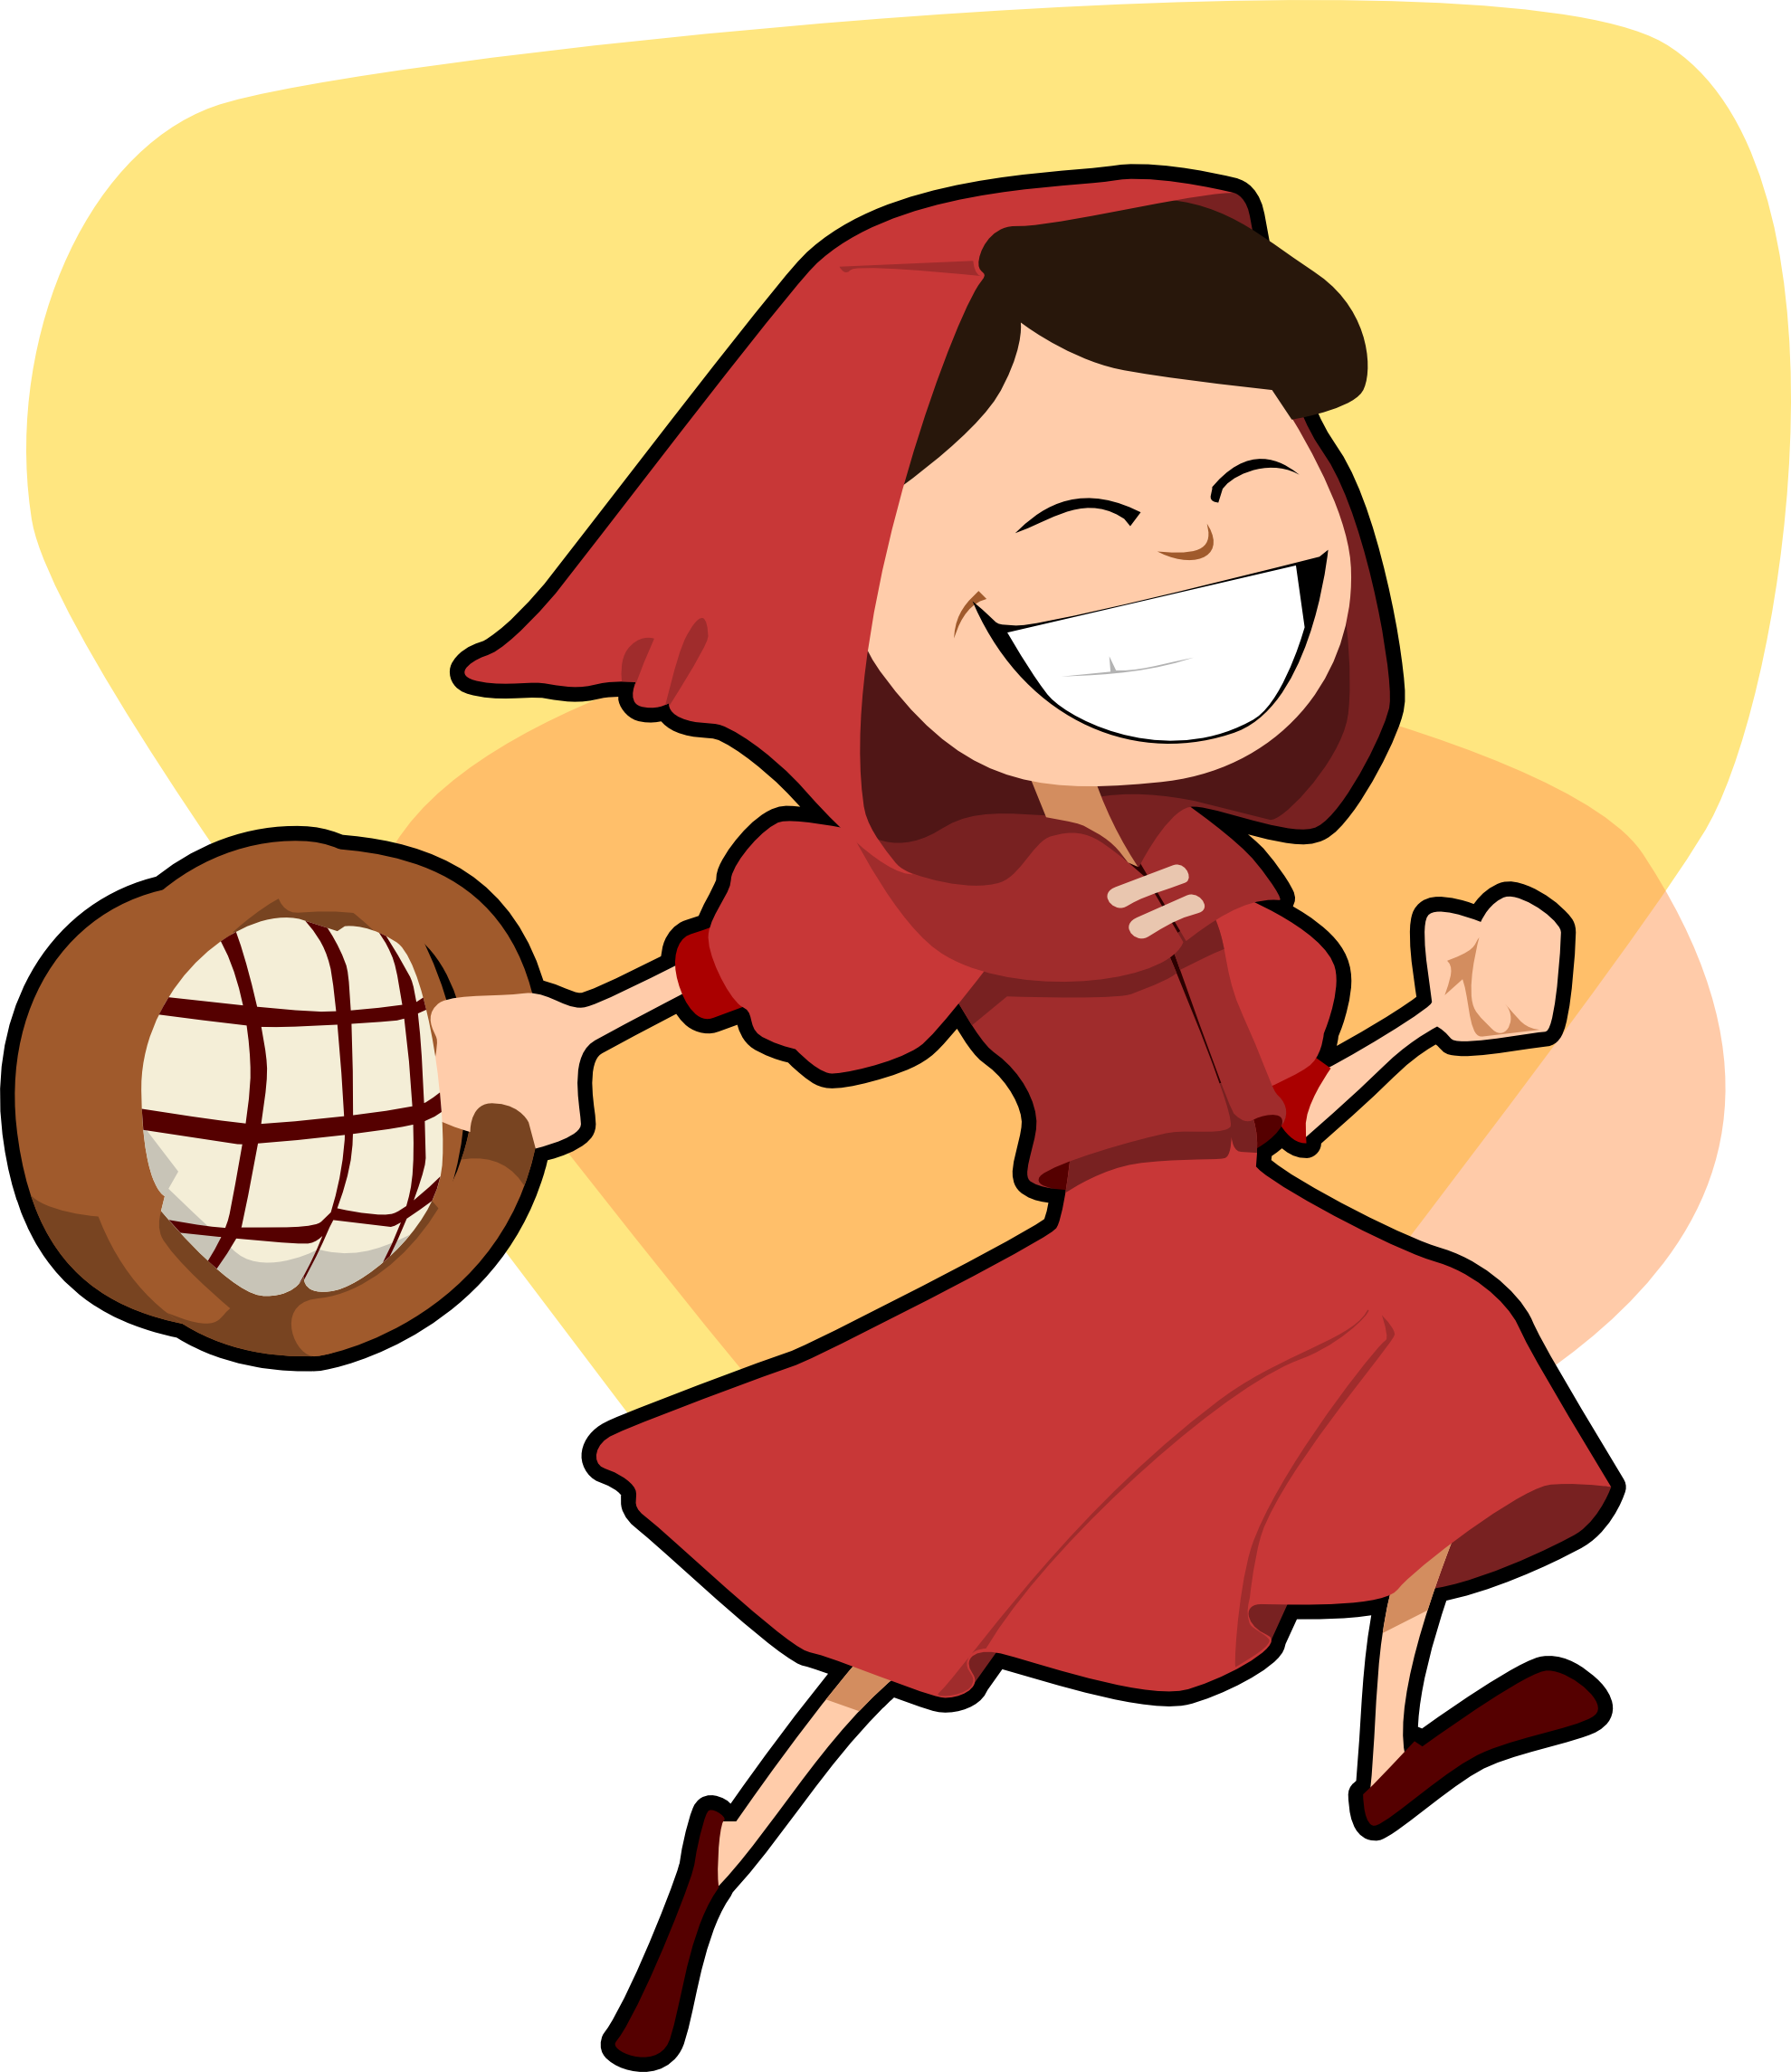 Hooded drawing little red riding hood. Diabetes fairytales self care